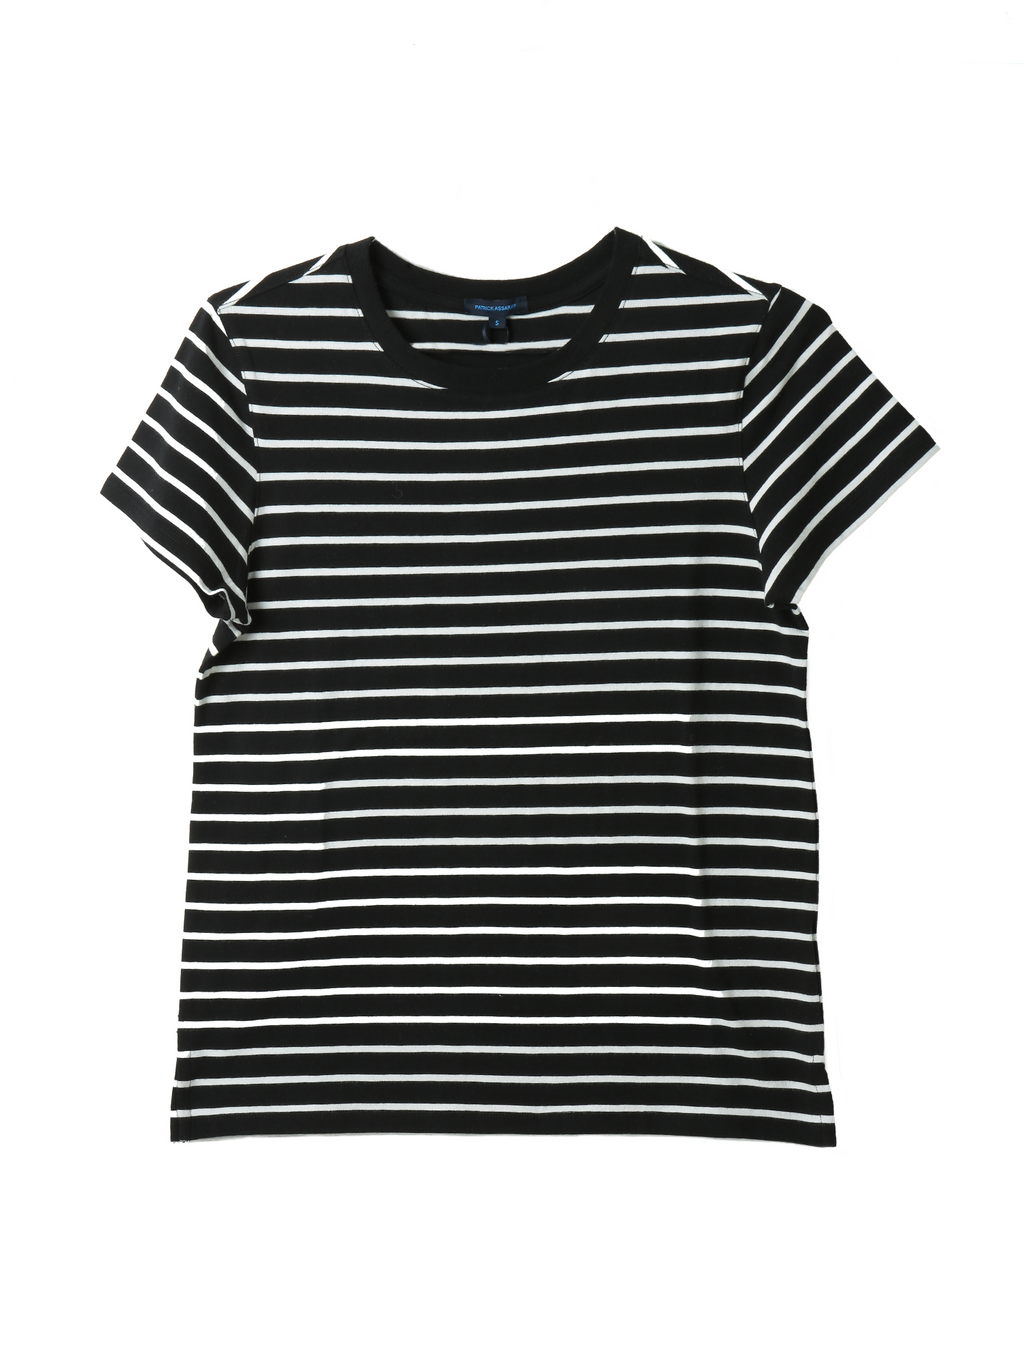 Patrick Assaraf Lightweight Pima Cotton Stripe Classic T-shirt